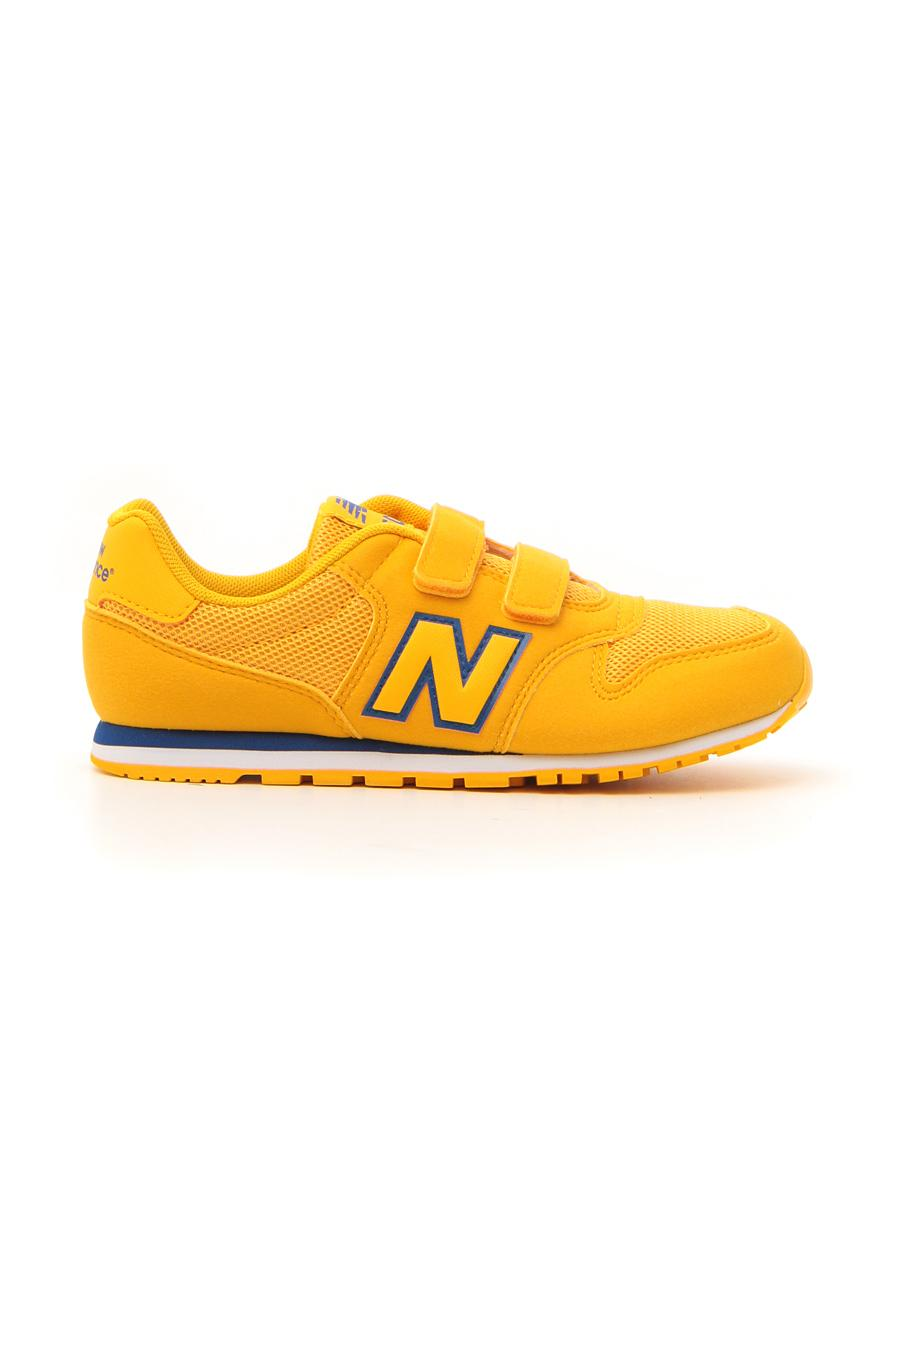 Sneakers New Balance 500 Classic Gialle Gialle